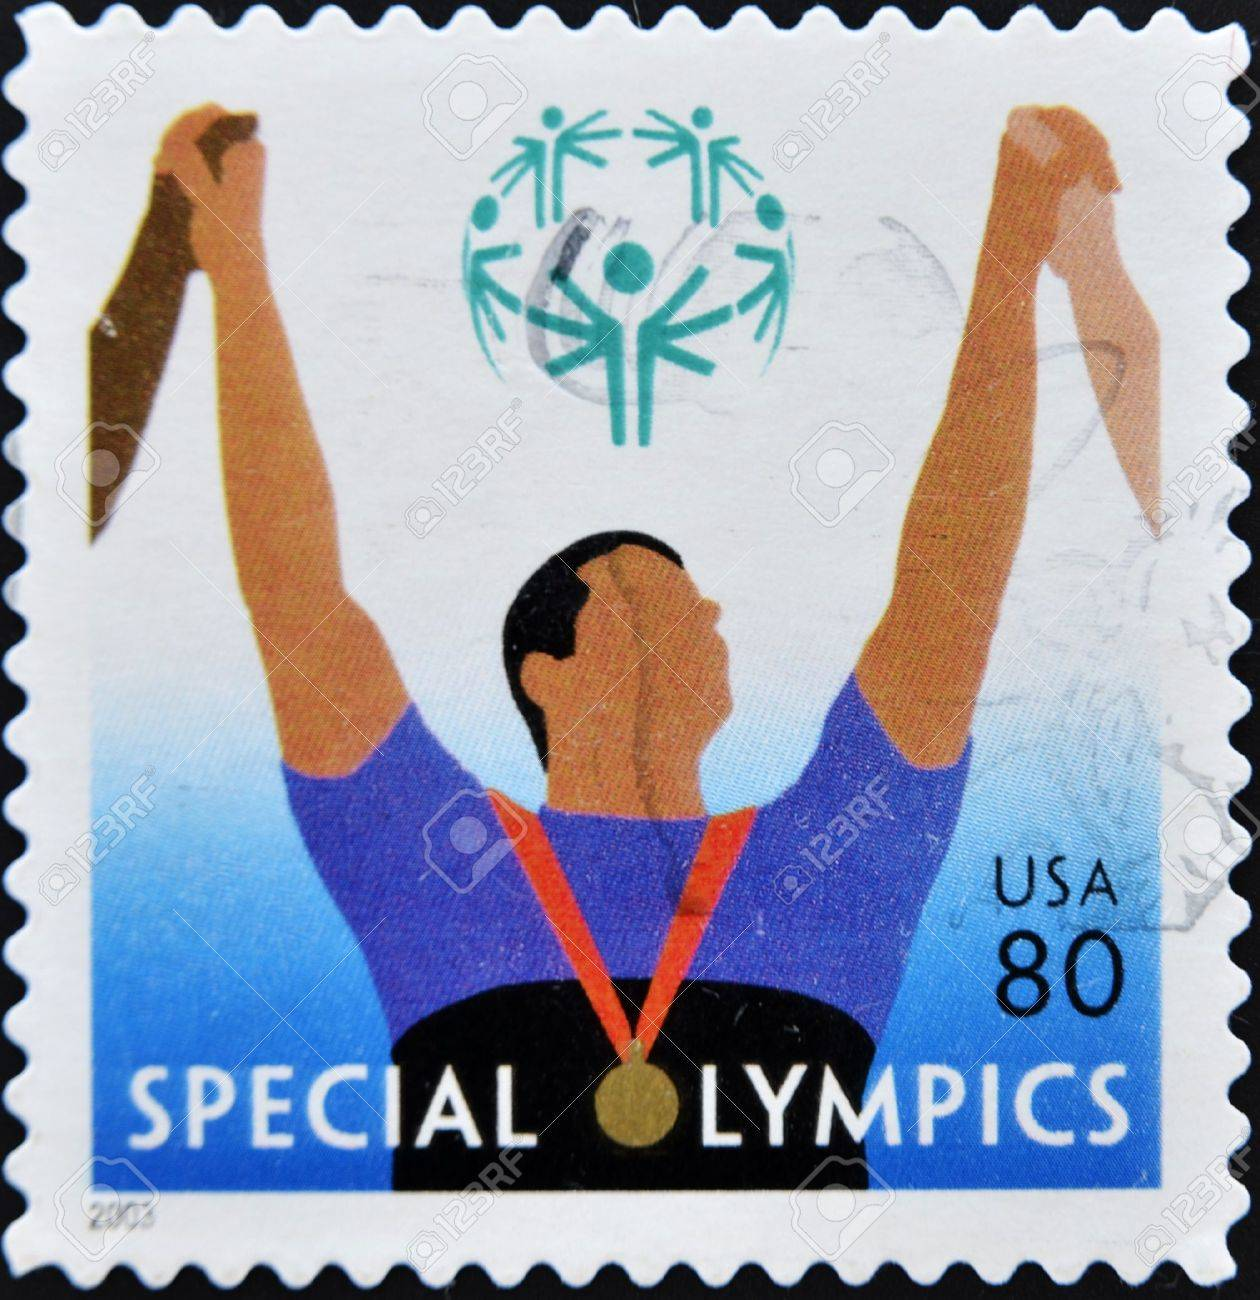 UNITED STATES OF AMERICA - CIRCA 2003: A stamp printed in the United States of America shows image celebrating the Special Olympics, series, circa 2003  Stock Photo - 11085303